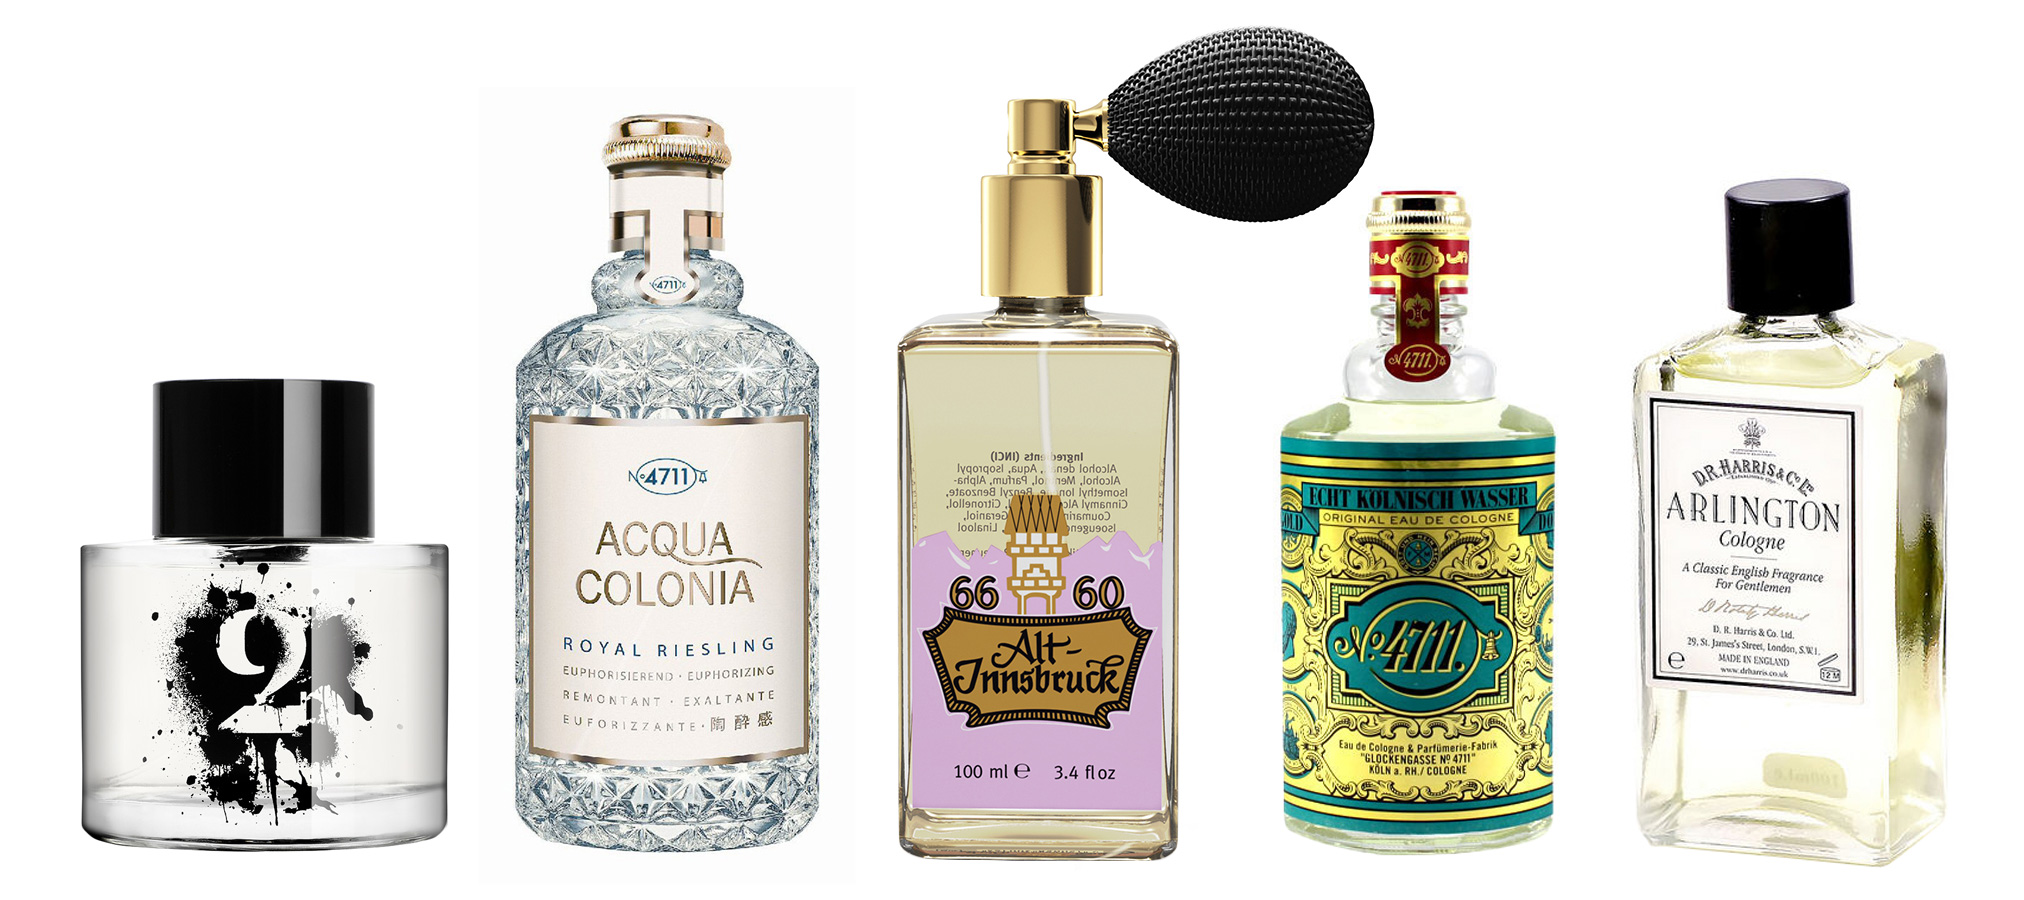 Choosing the Best Cologne for Men: Find your Perfect Cologne